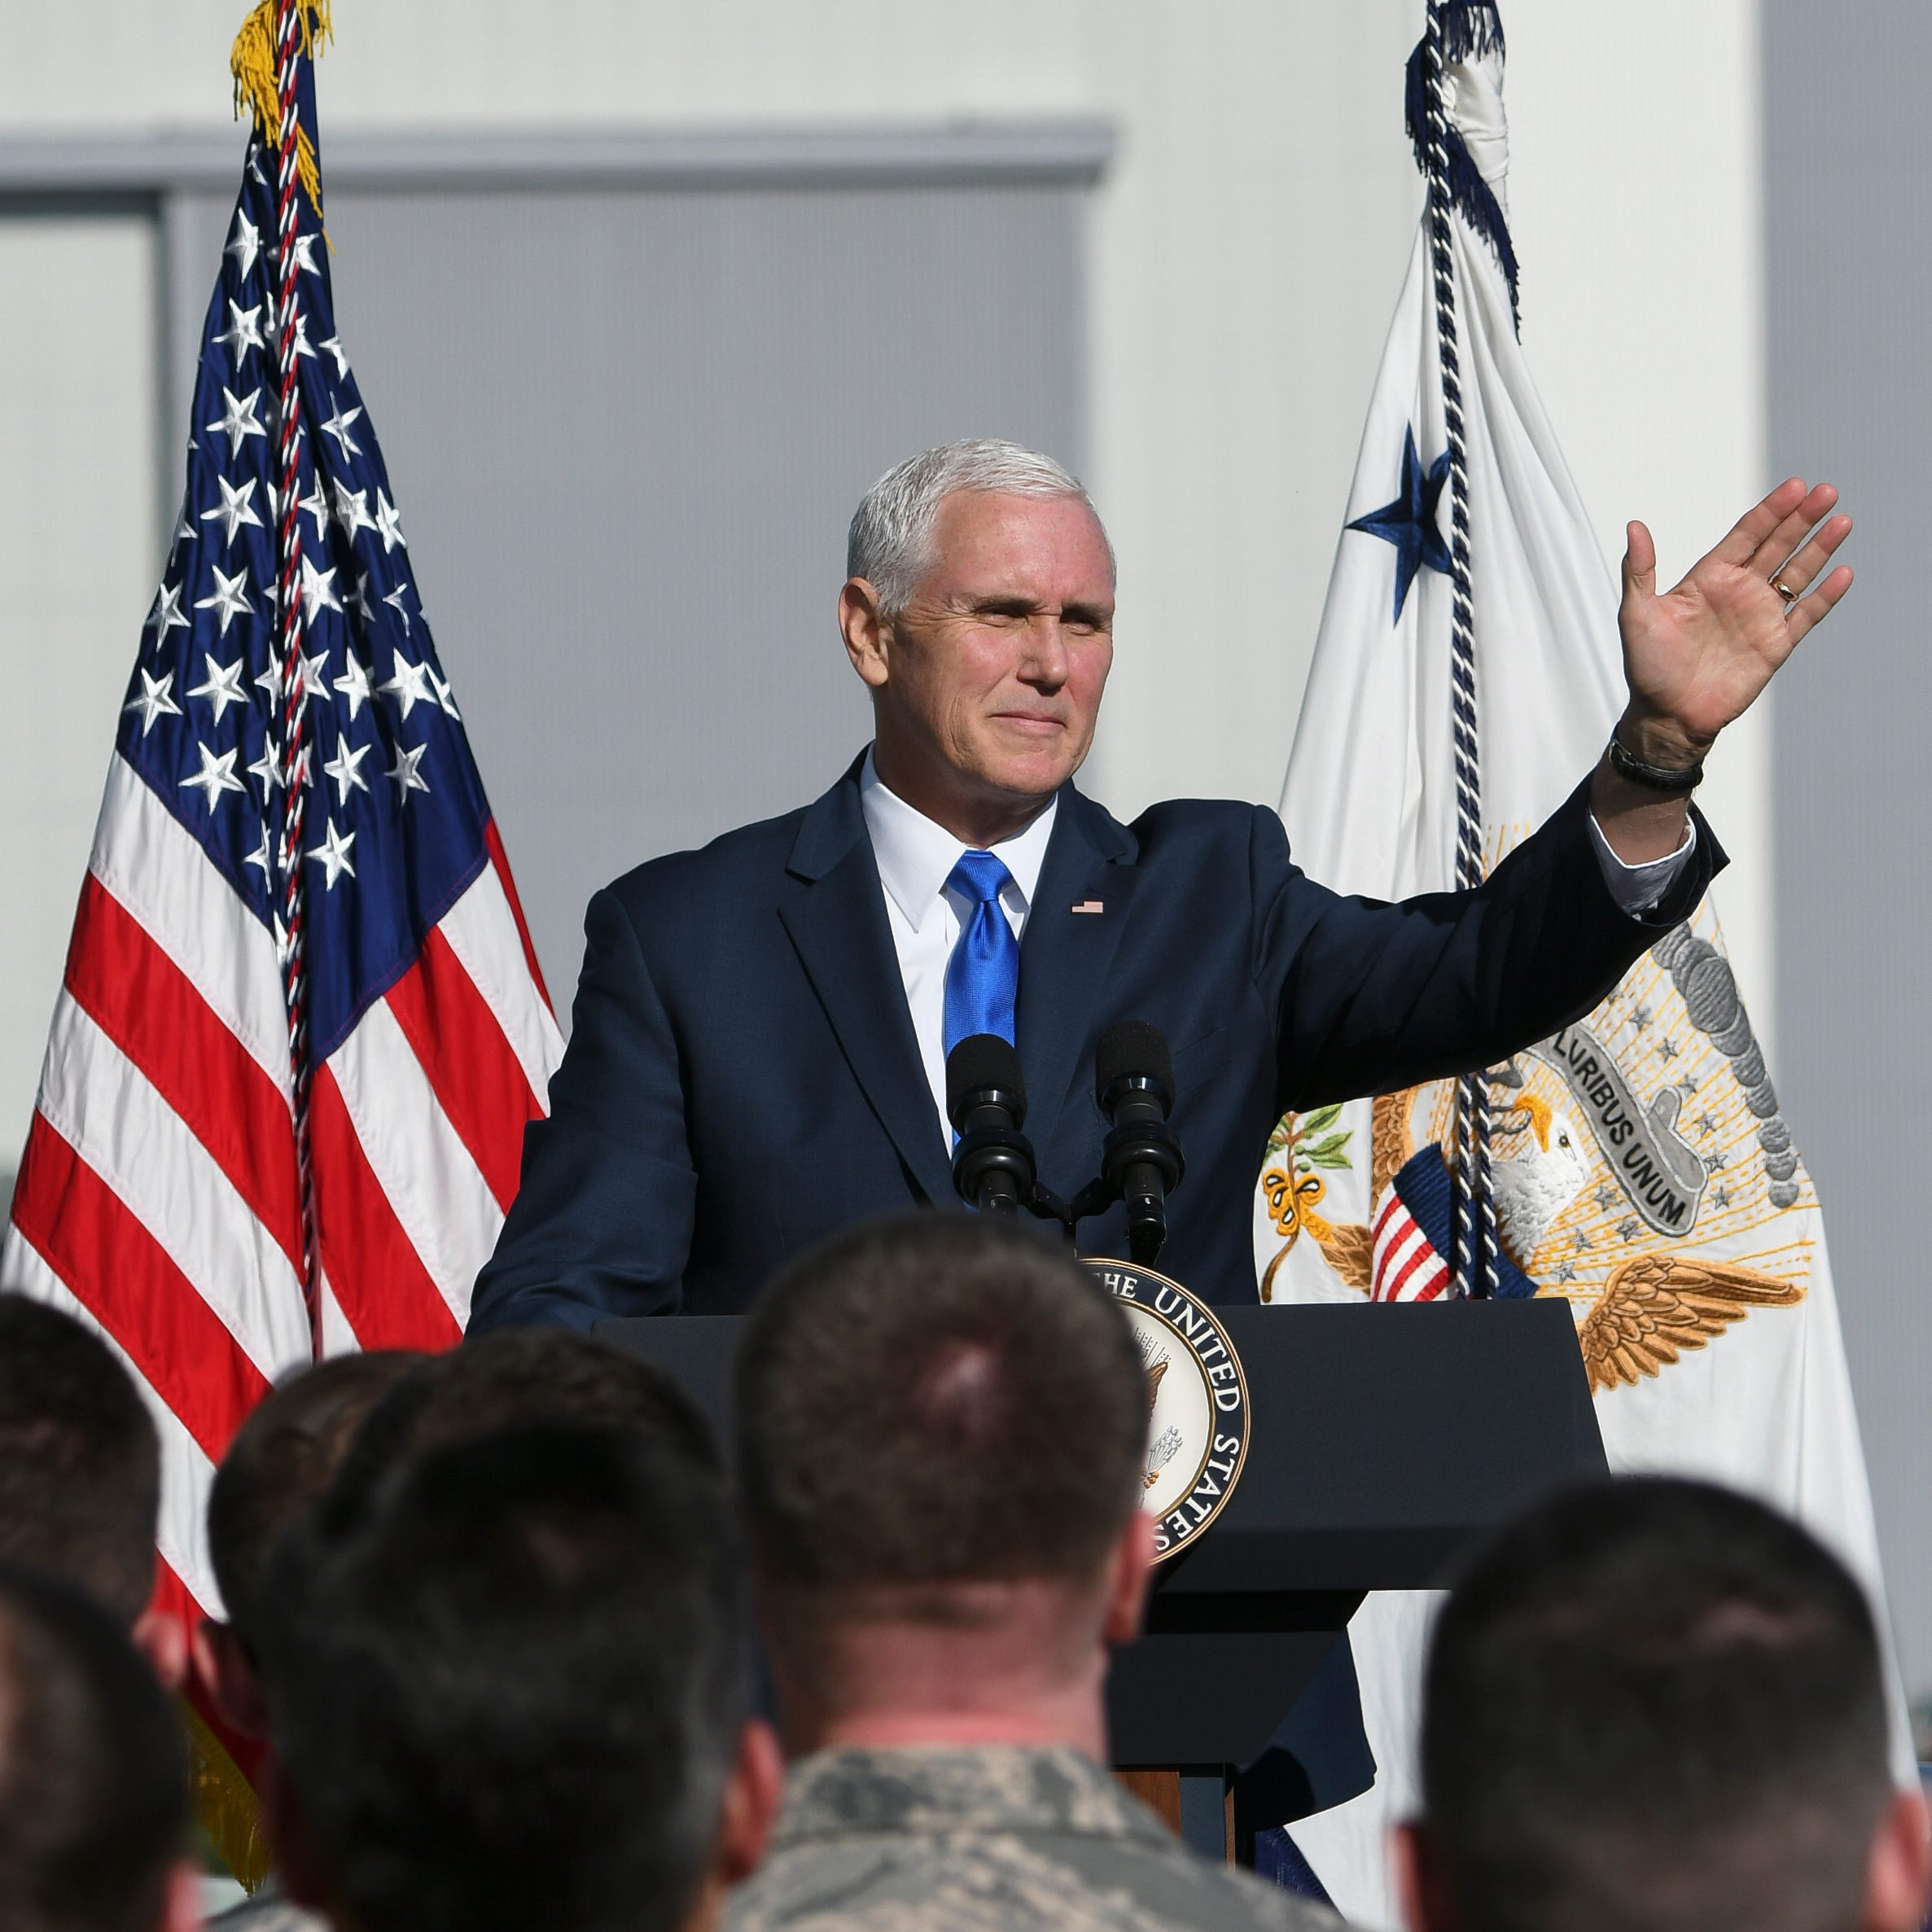 Pence at KSC: New U.S. Space Command to oversee military space operations